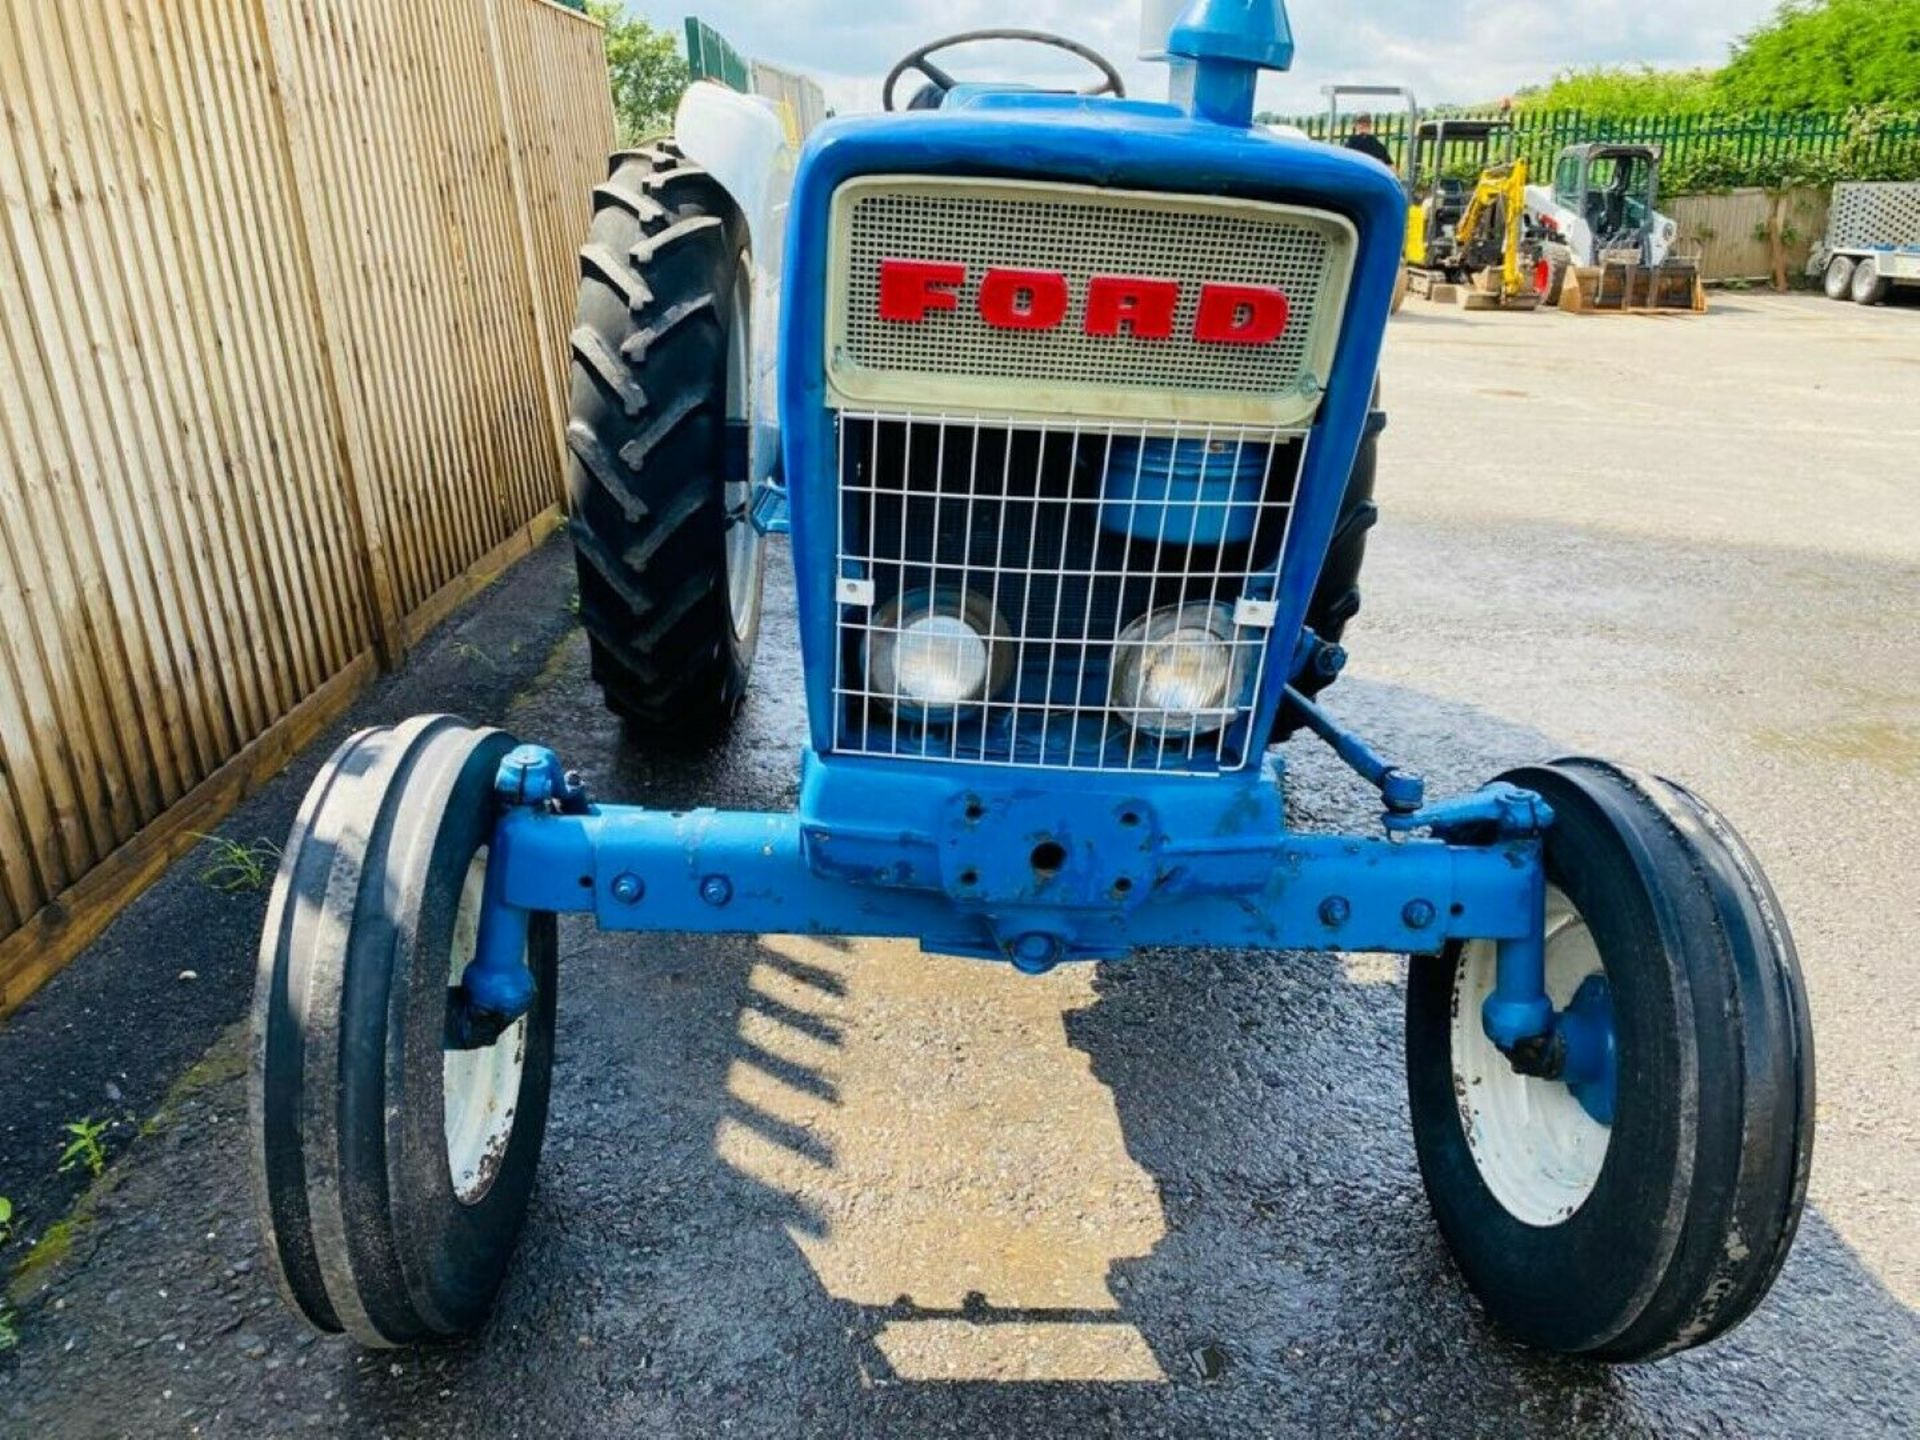 Ford 4000 Tractor 1969 - Image 5 of 12